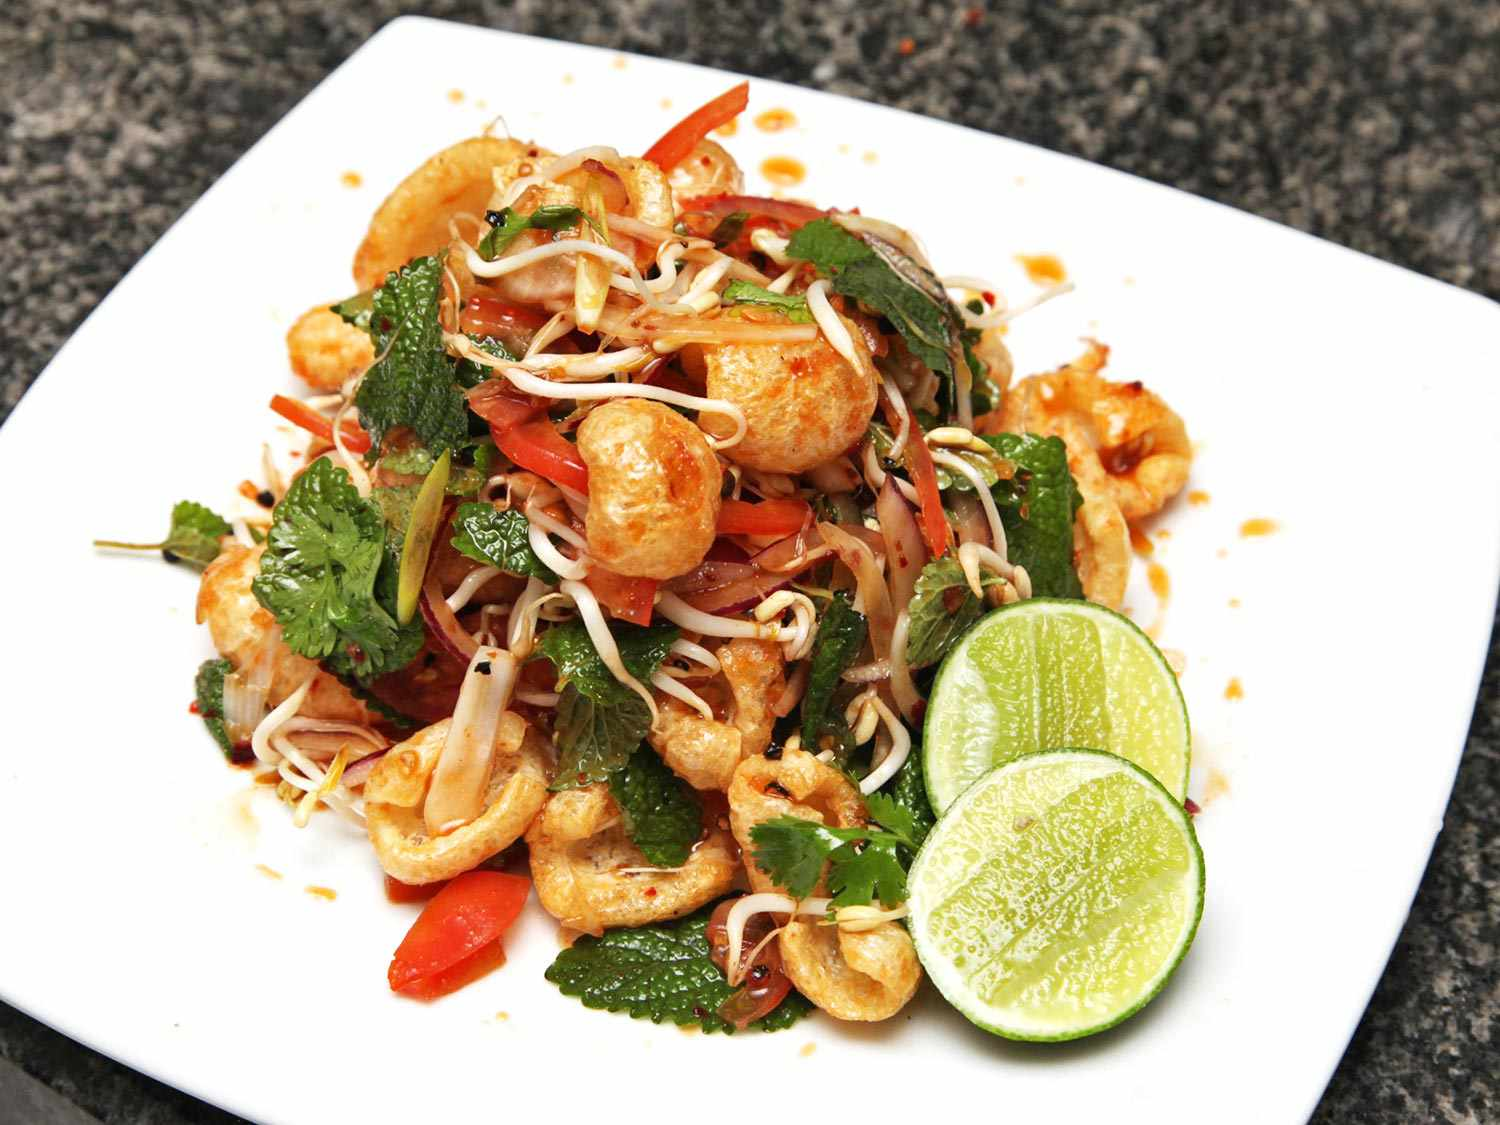 A Thai-style salad of fried pork rinds, herbs, bean sprouts, and peppers, garnished with lime halves